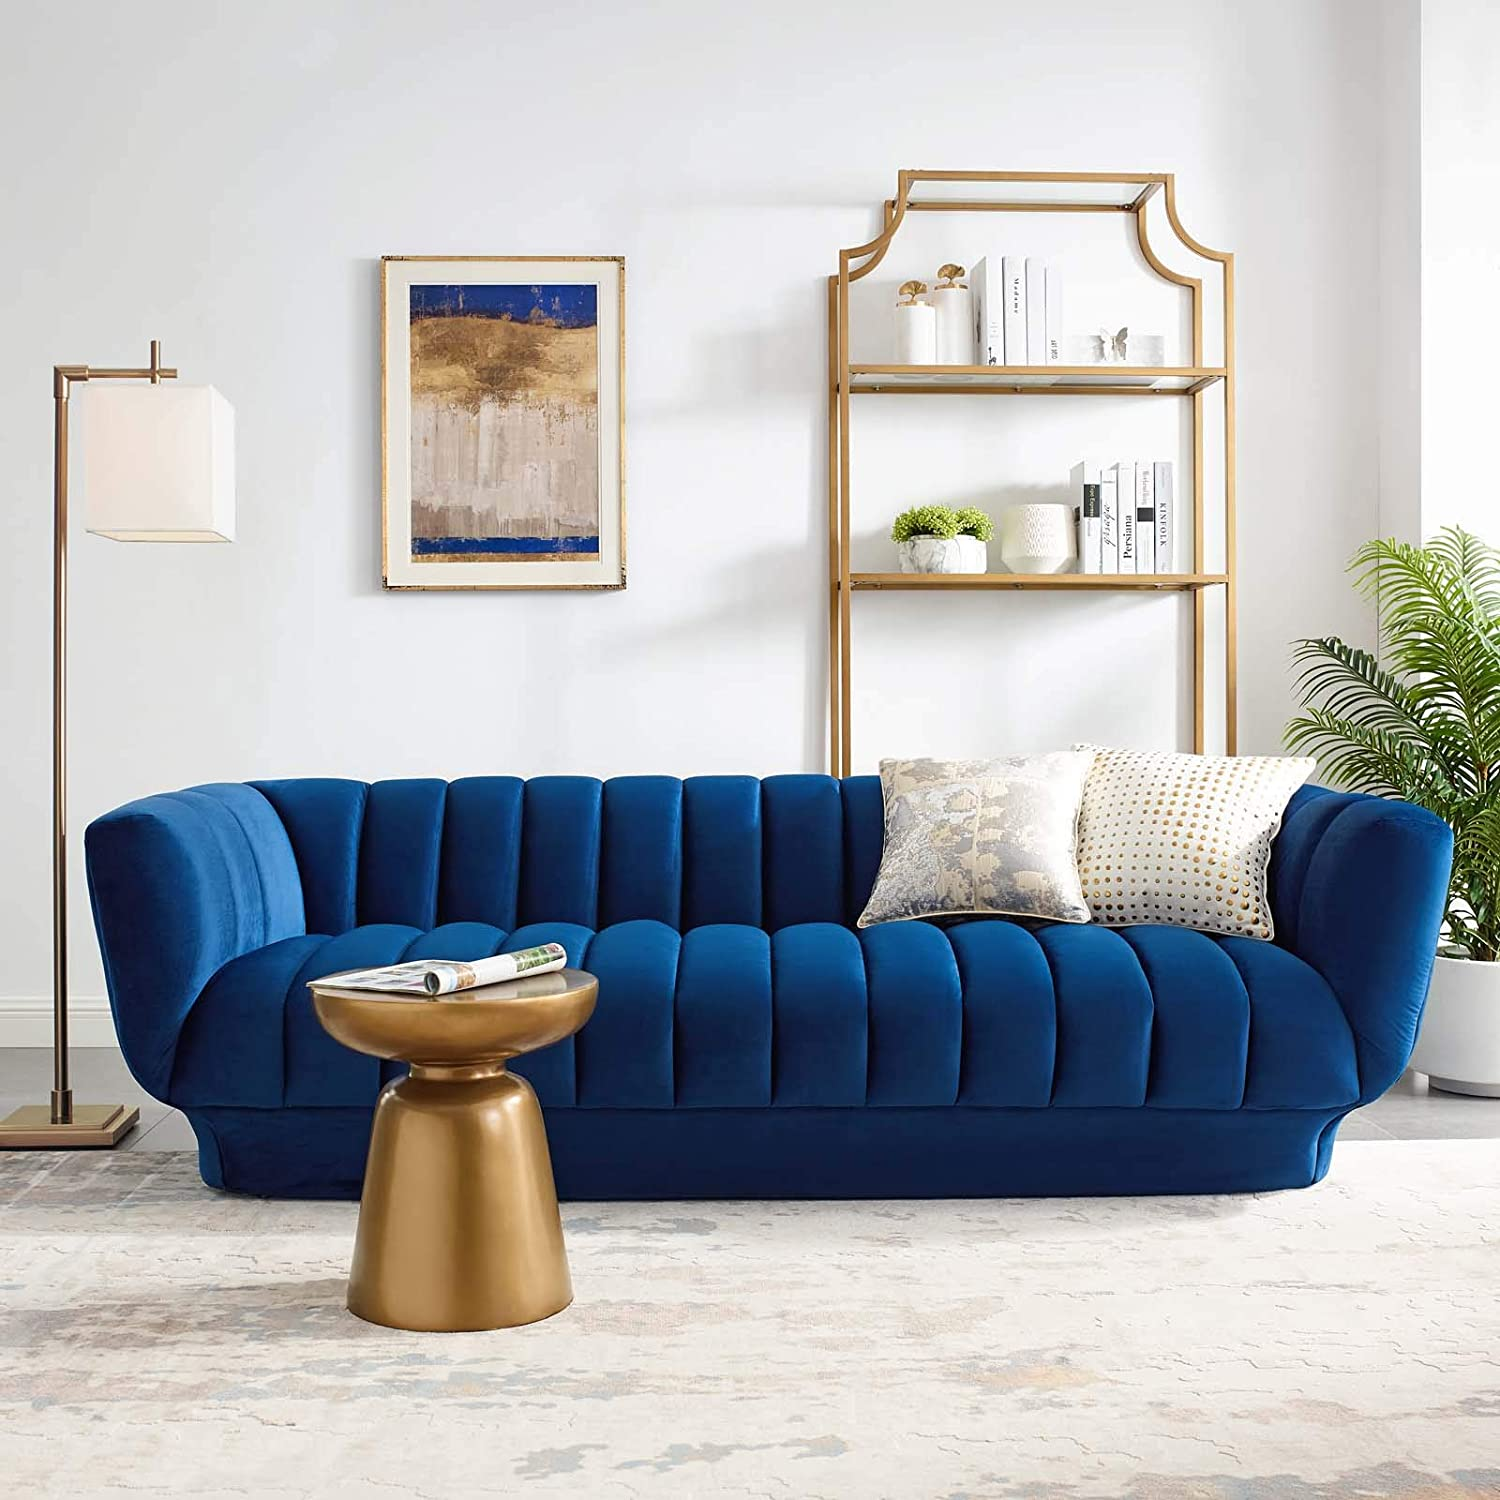 blue couch with gold furniture accents around it